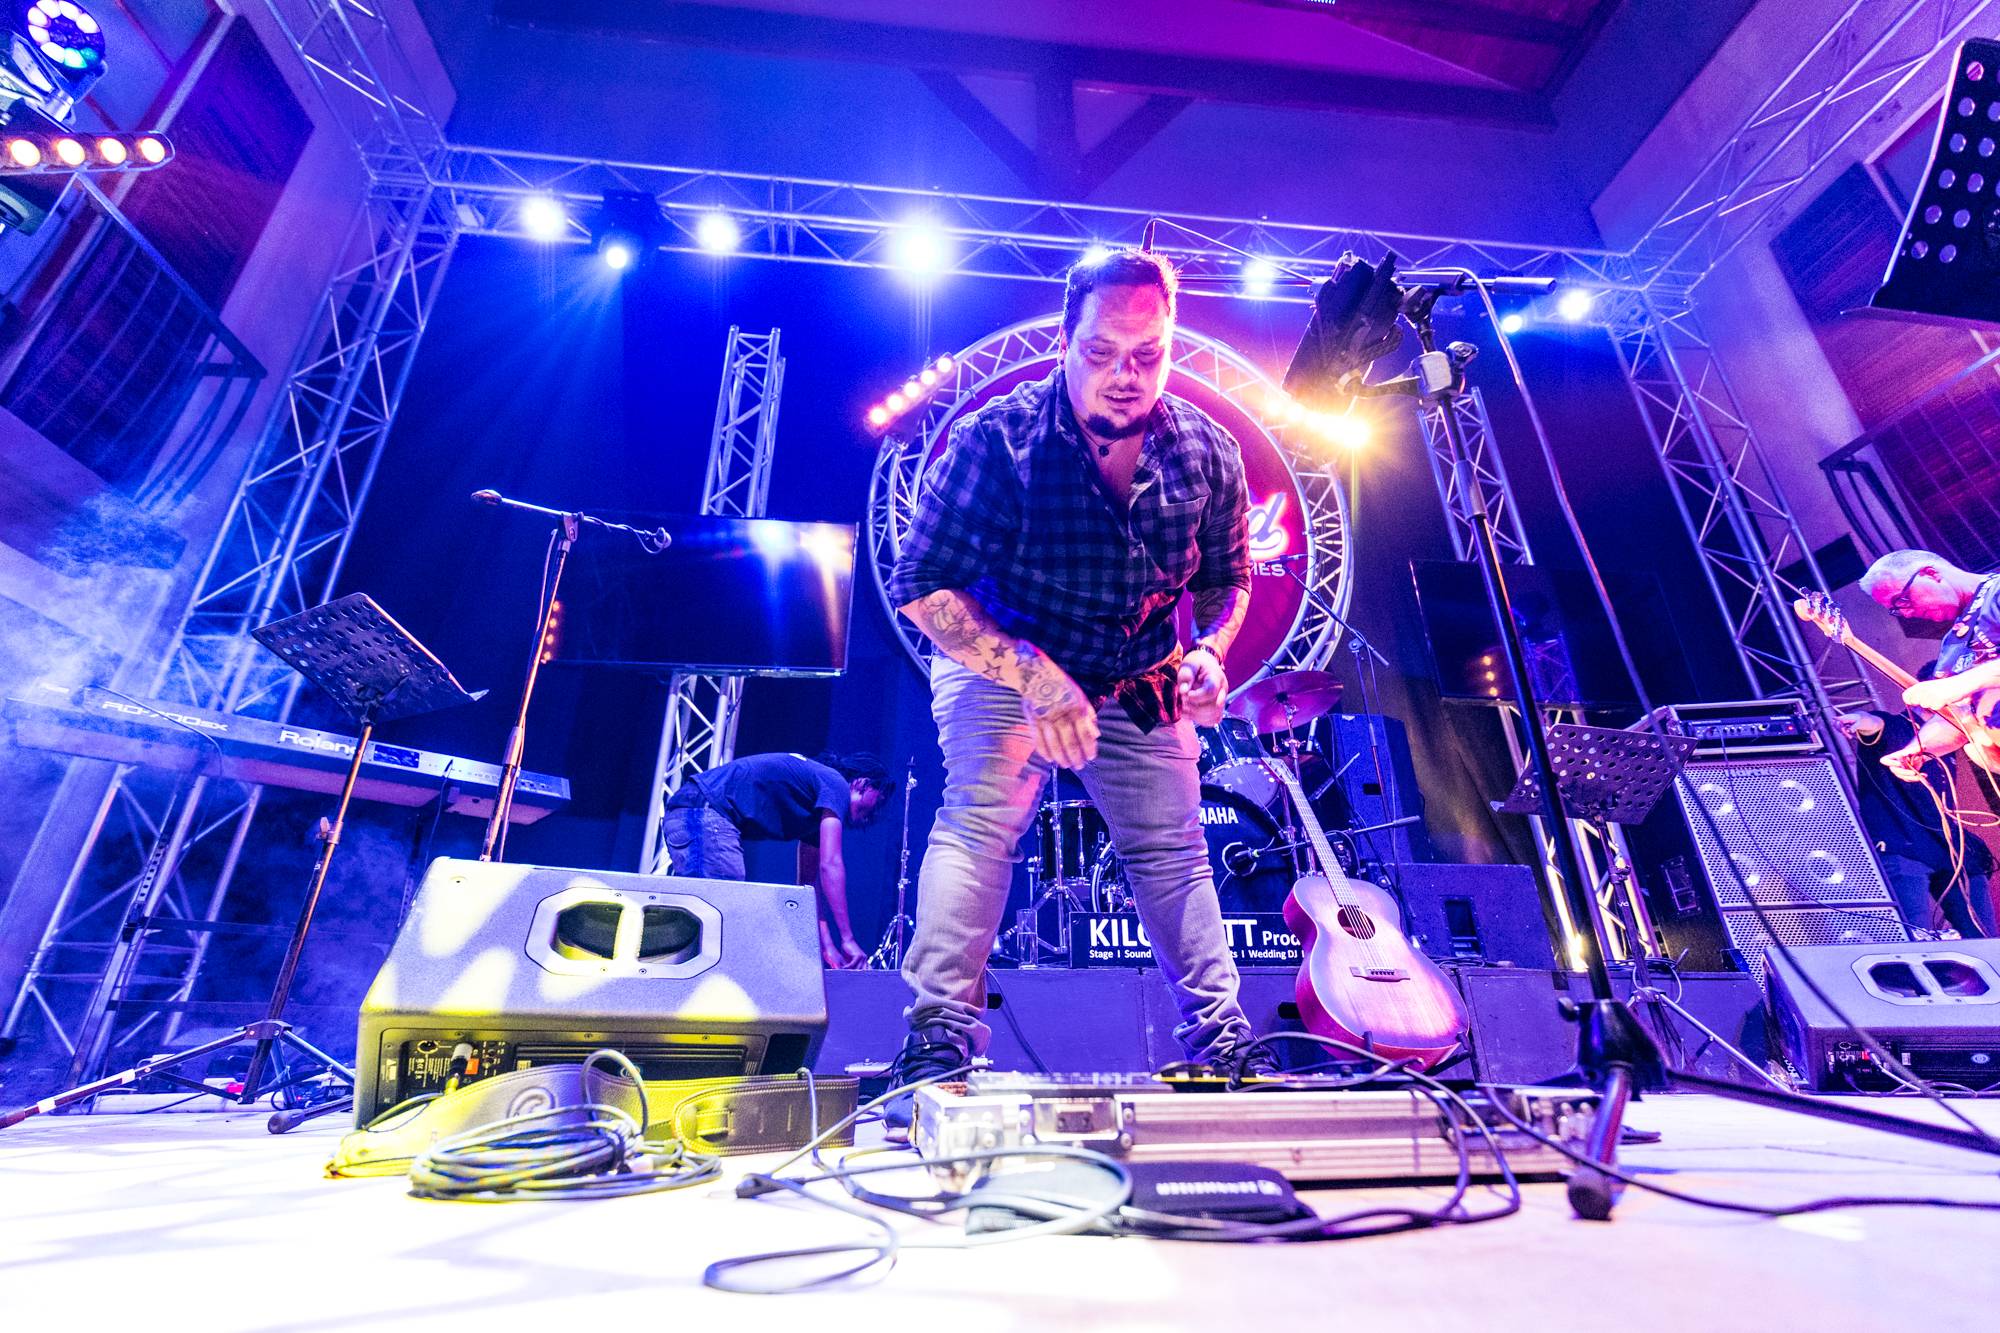 A Day with Pedro Barbosa - Mozambique-born Pedro Barbosa is no stranger to the South African music scene. I got the opportunity to shadow him for a day to see exactly what the life of a musician is like… (This day he opened for Brian McFadden (ex Westlife))